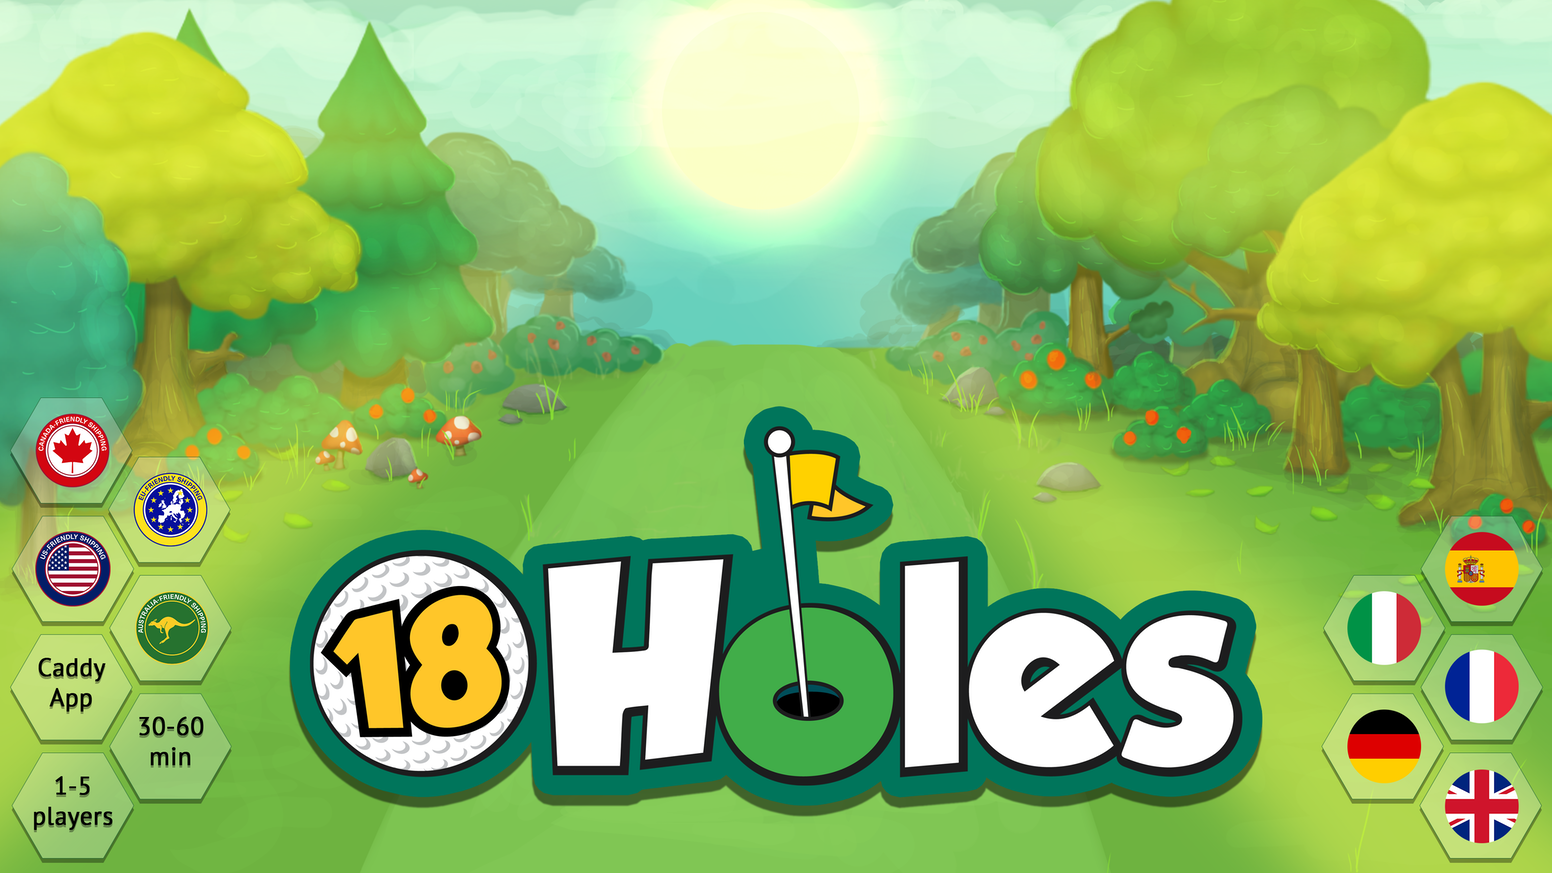 Hit off-course on purpose in this golf-themed board game for 1 to 5 players.